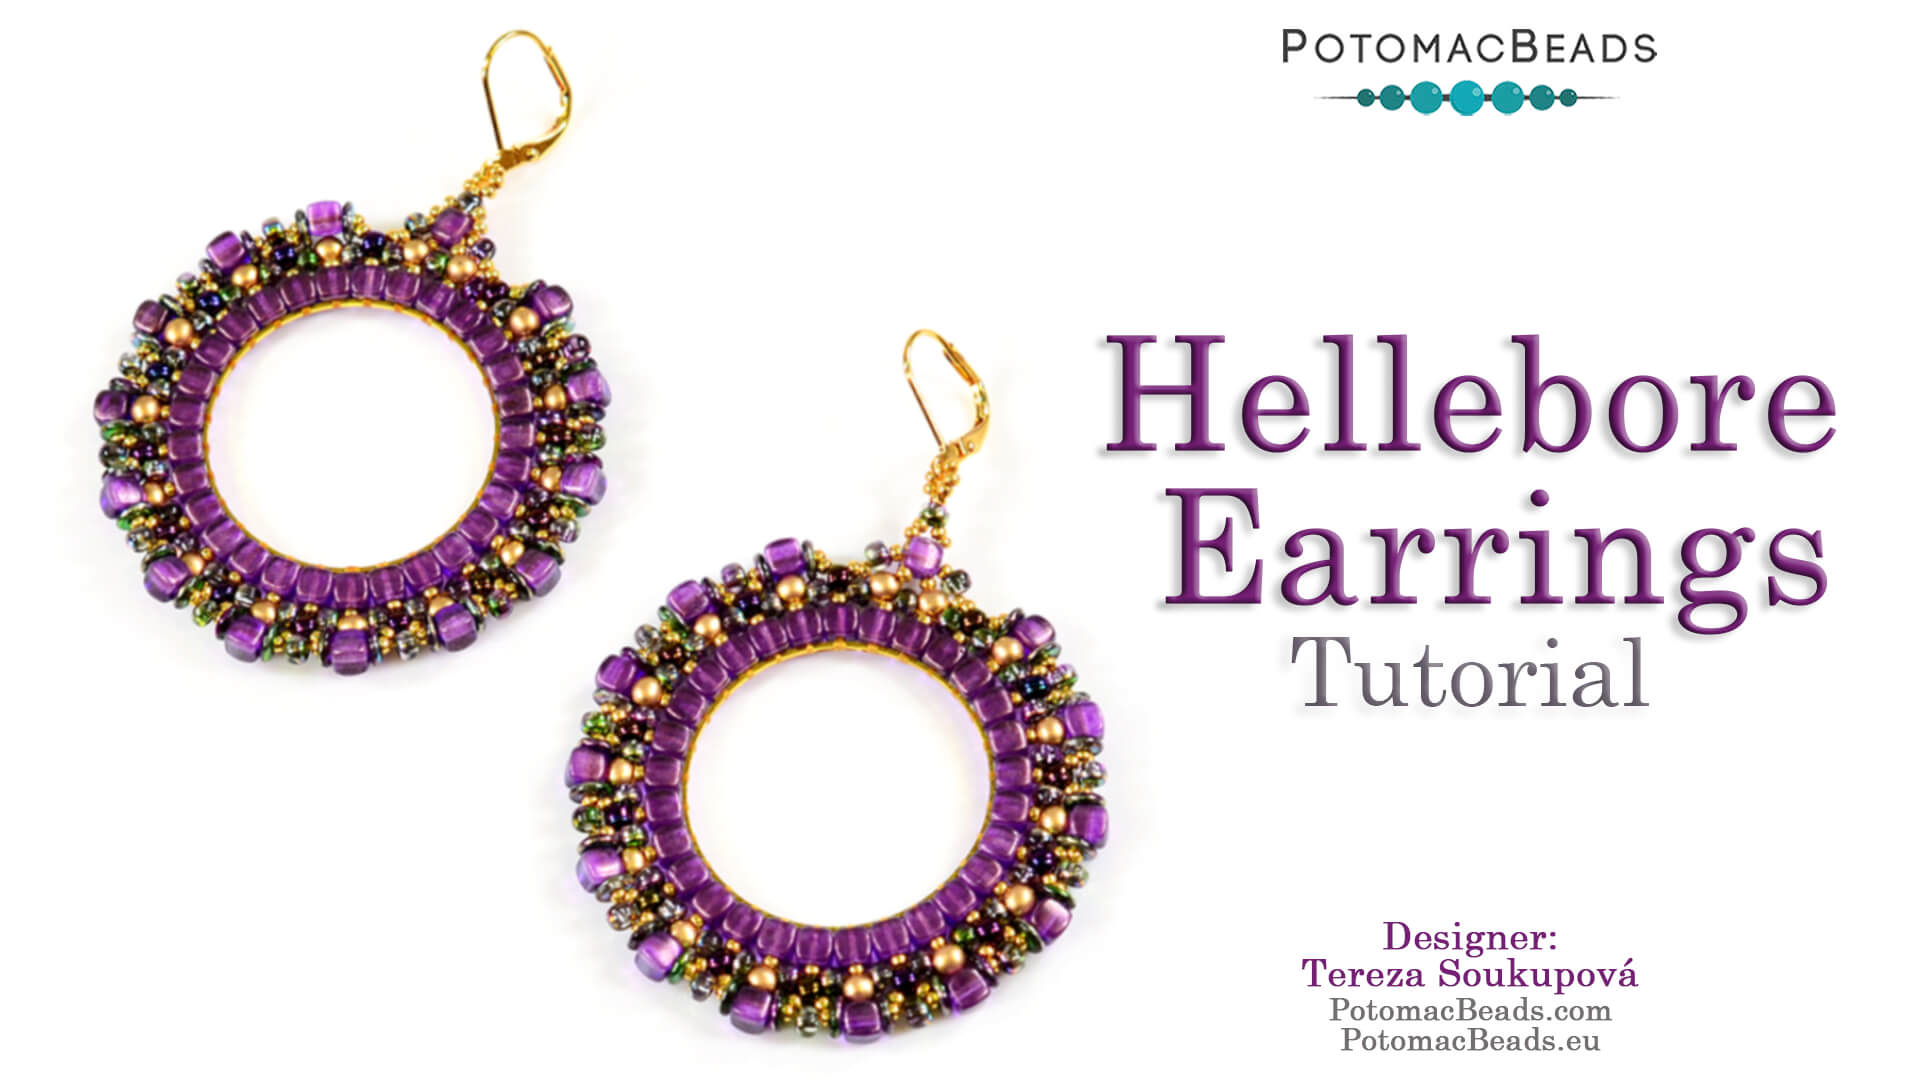 How to Bead Jewelry / Videos Sorted by Beads / Pearl Videos (Czech, Freshwater, Potomac Pearls) / Hellebore Earrings Tutorial